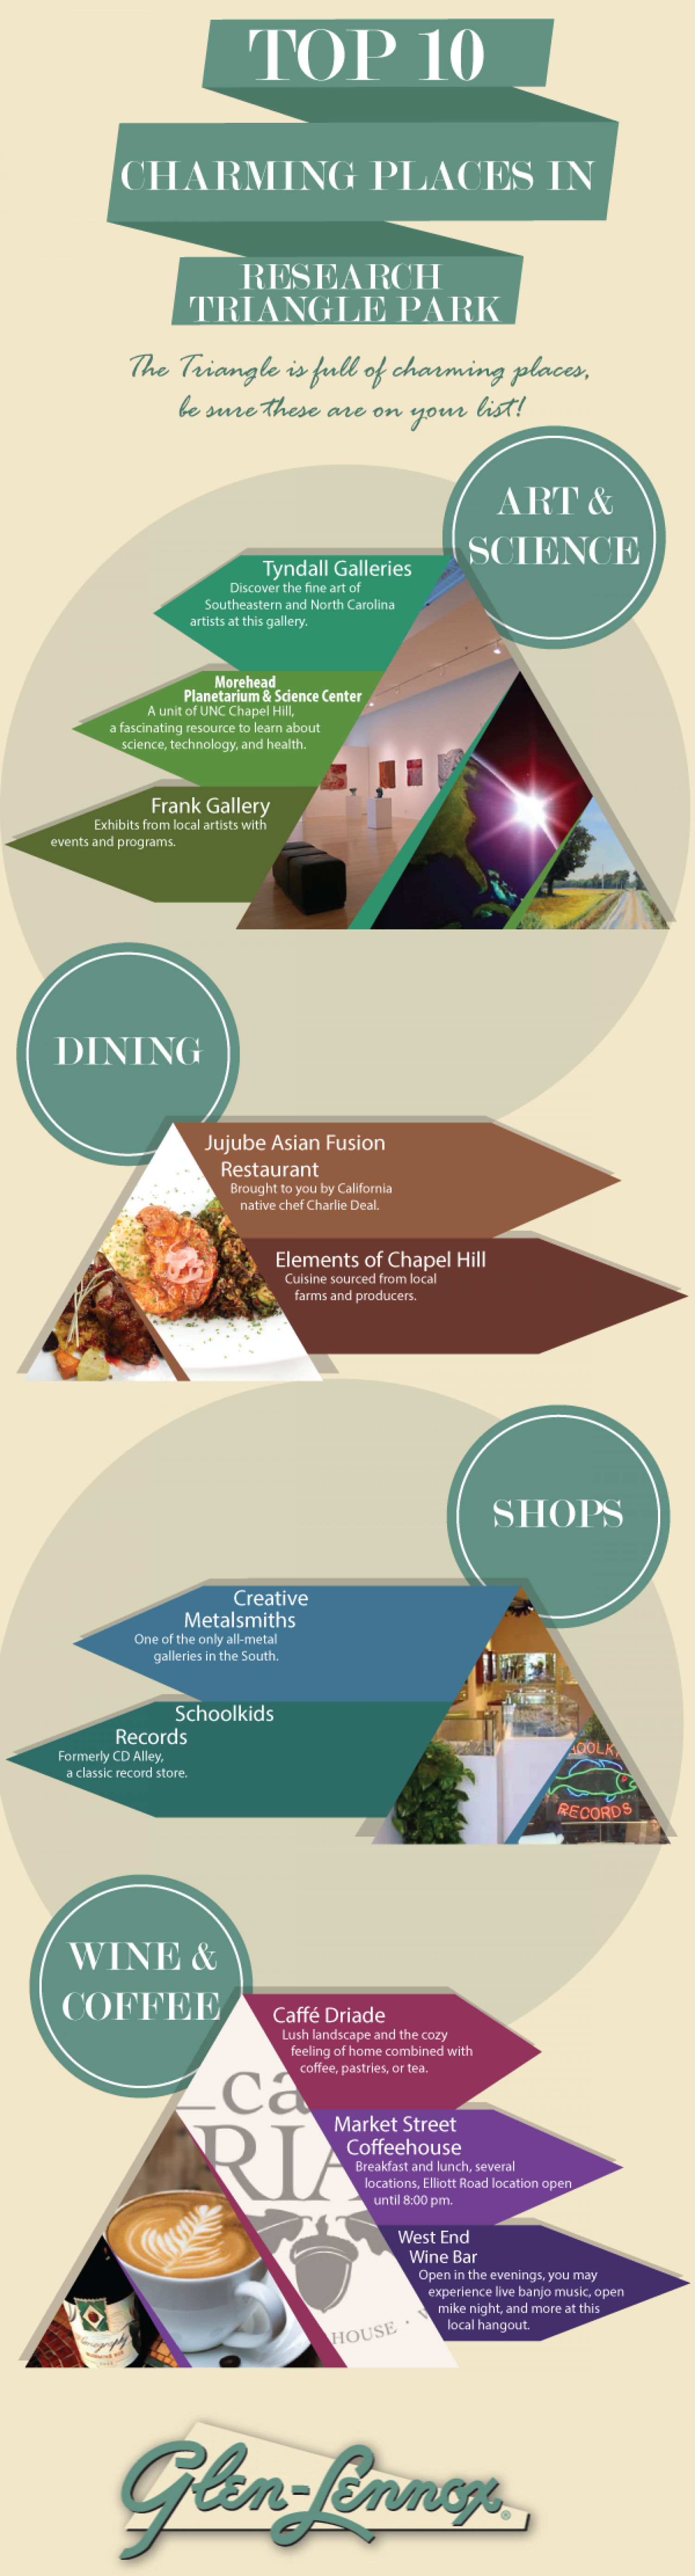 Top 10 Charming Places in Research Triangle Park Infographic